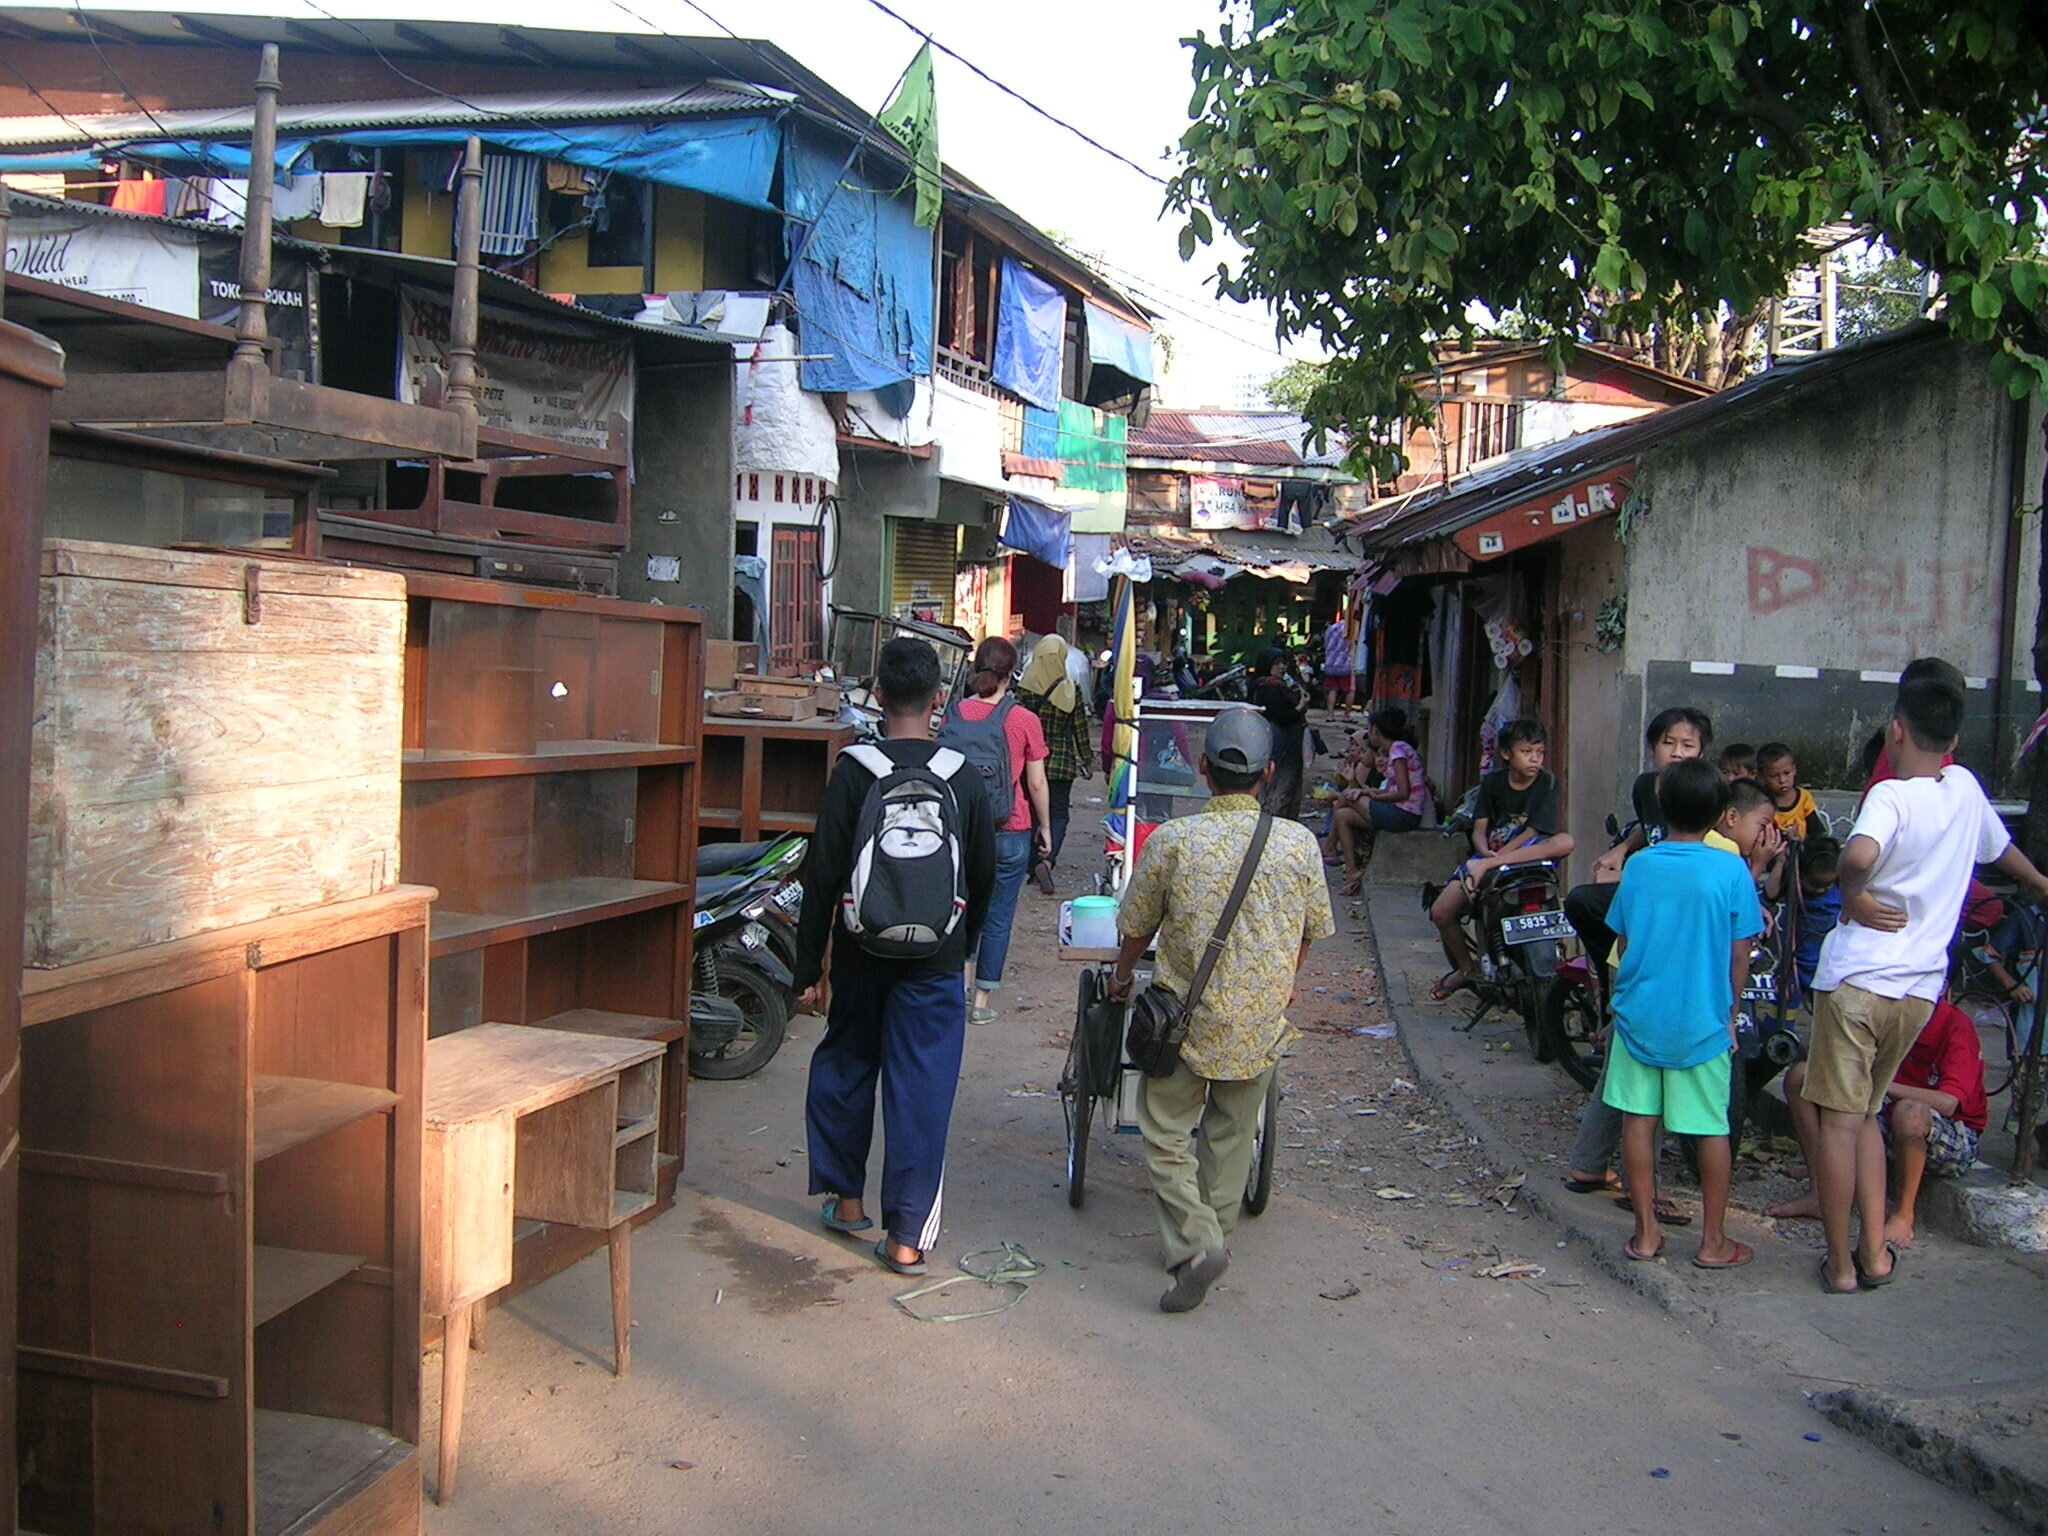 Figure 3. Kampung Pulo, 2015. This kampung, demolished shortly after this photograph was taken, played an important economic role as an income-pooling domain for workers. Like other kampungs in Jakarta, many of its households included one or two members who worked in the formal sector (such as in shopping malls, office buildings, or factories), while others earned a living as street vendors (such as the man at center) and maids, or in petty commodity production and retail, selling wares such as furniture. Photograph by Abidin Kusno.